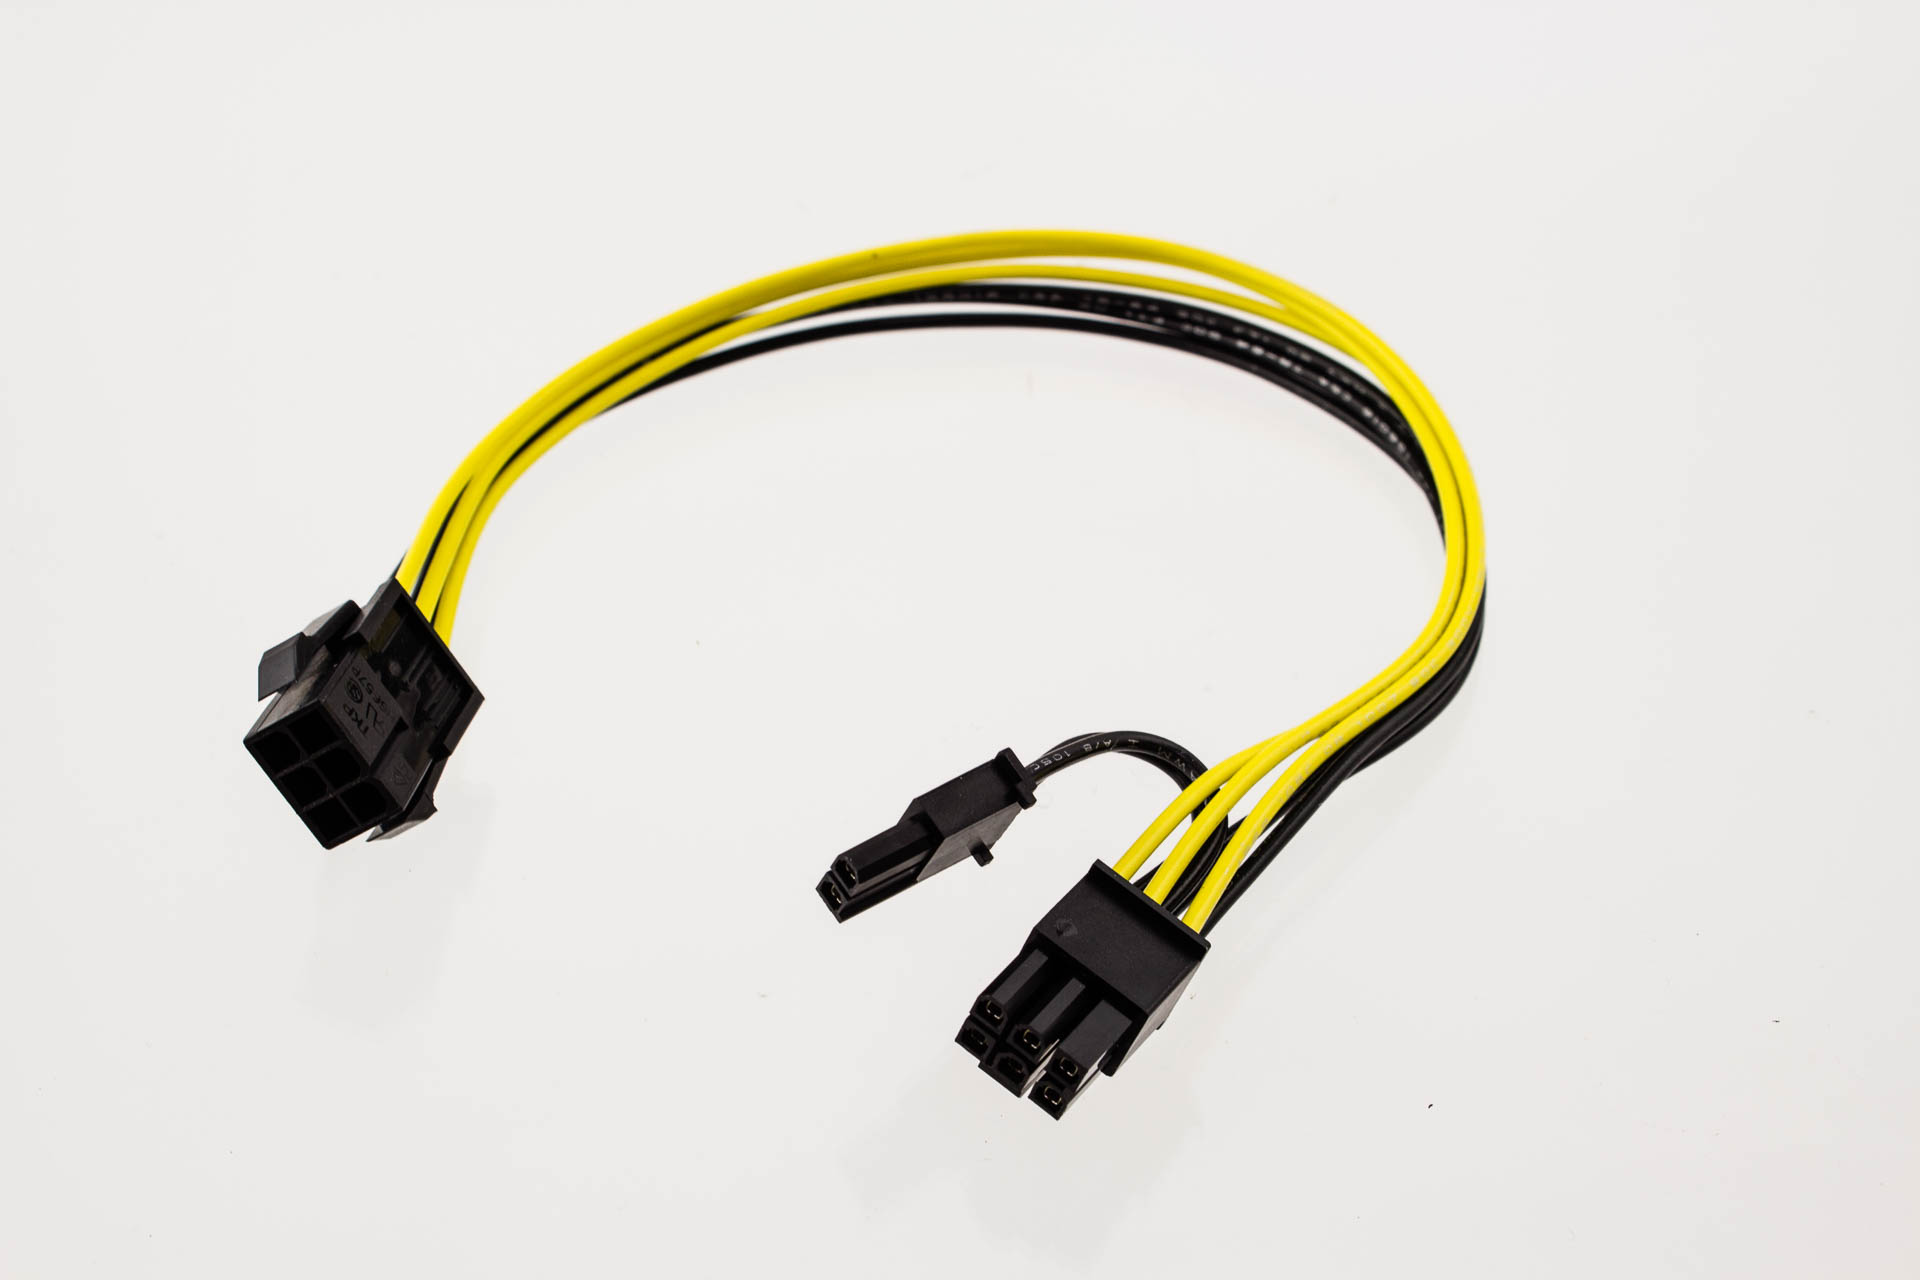 hight resolution of pci express power adapter cable 6p male to 6p female 2p female